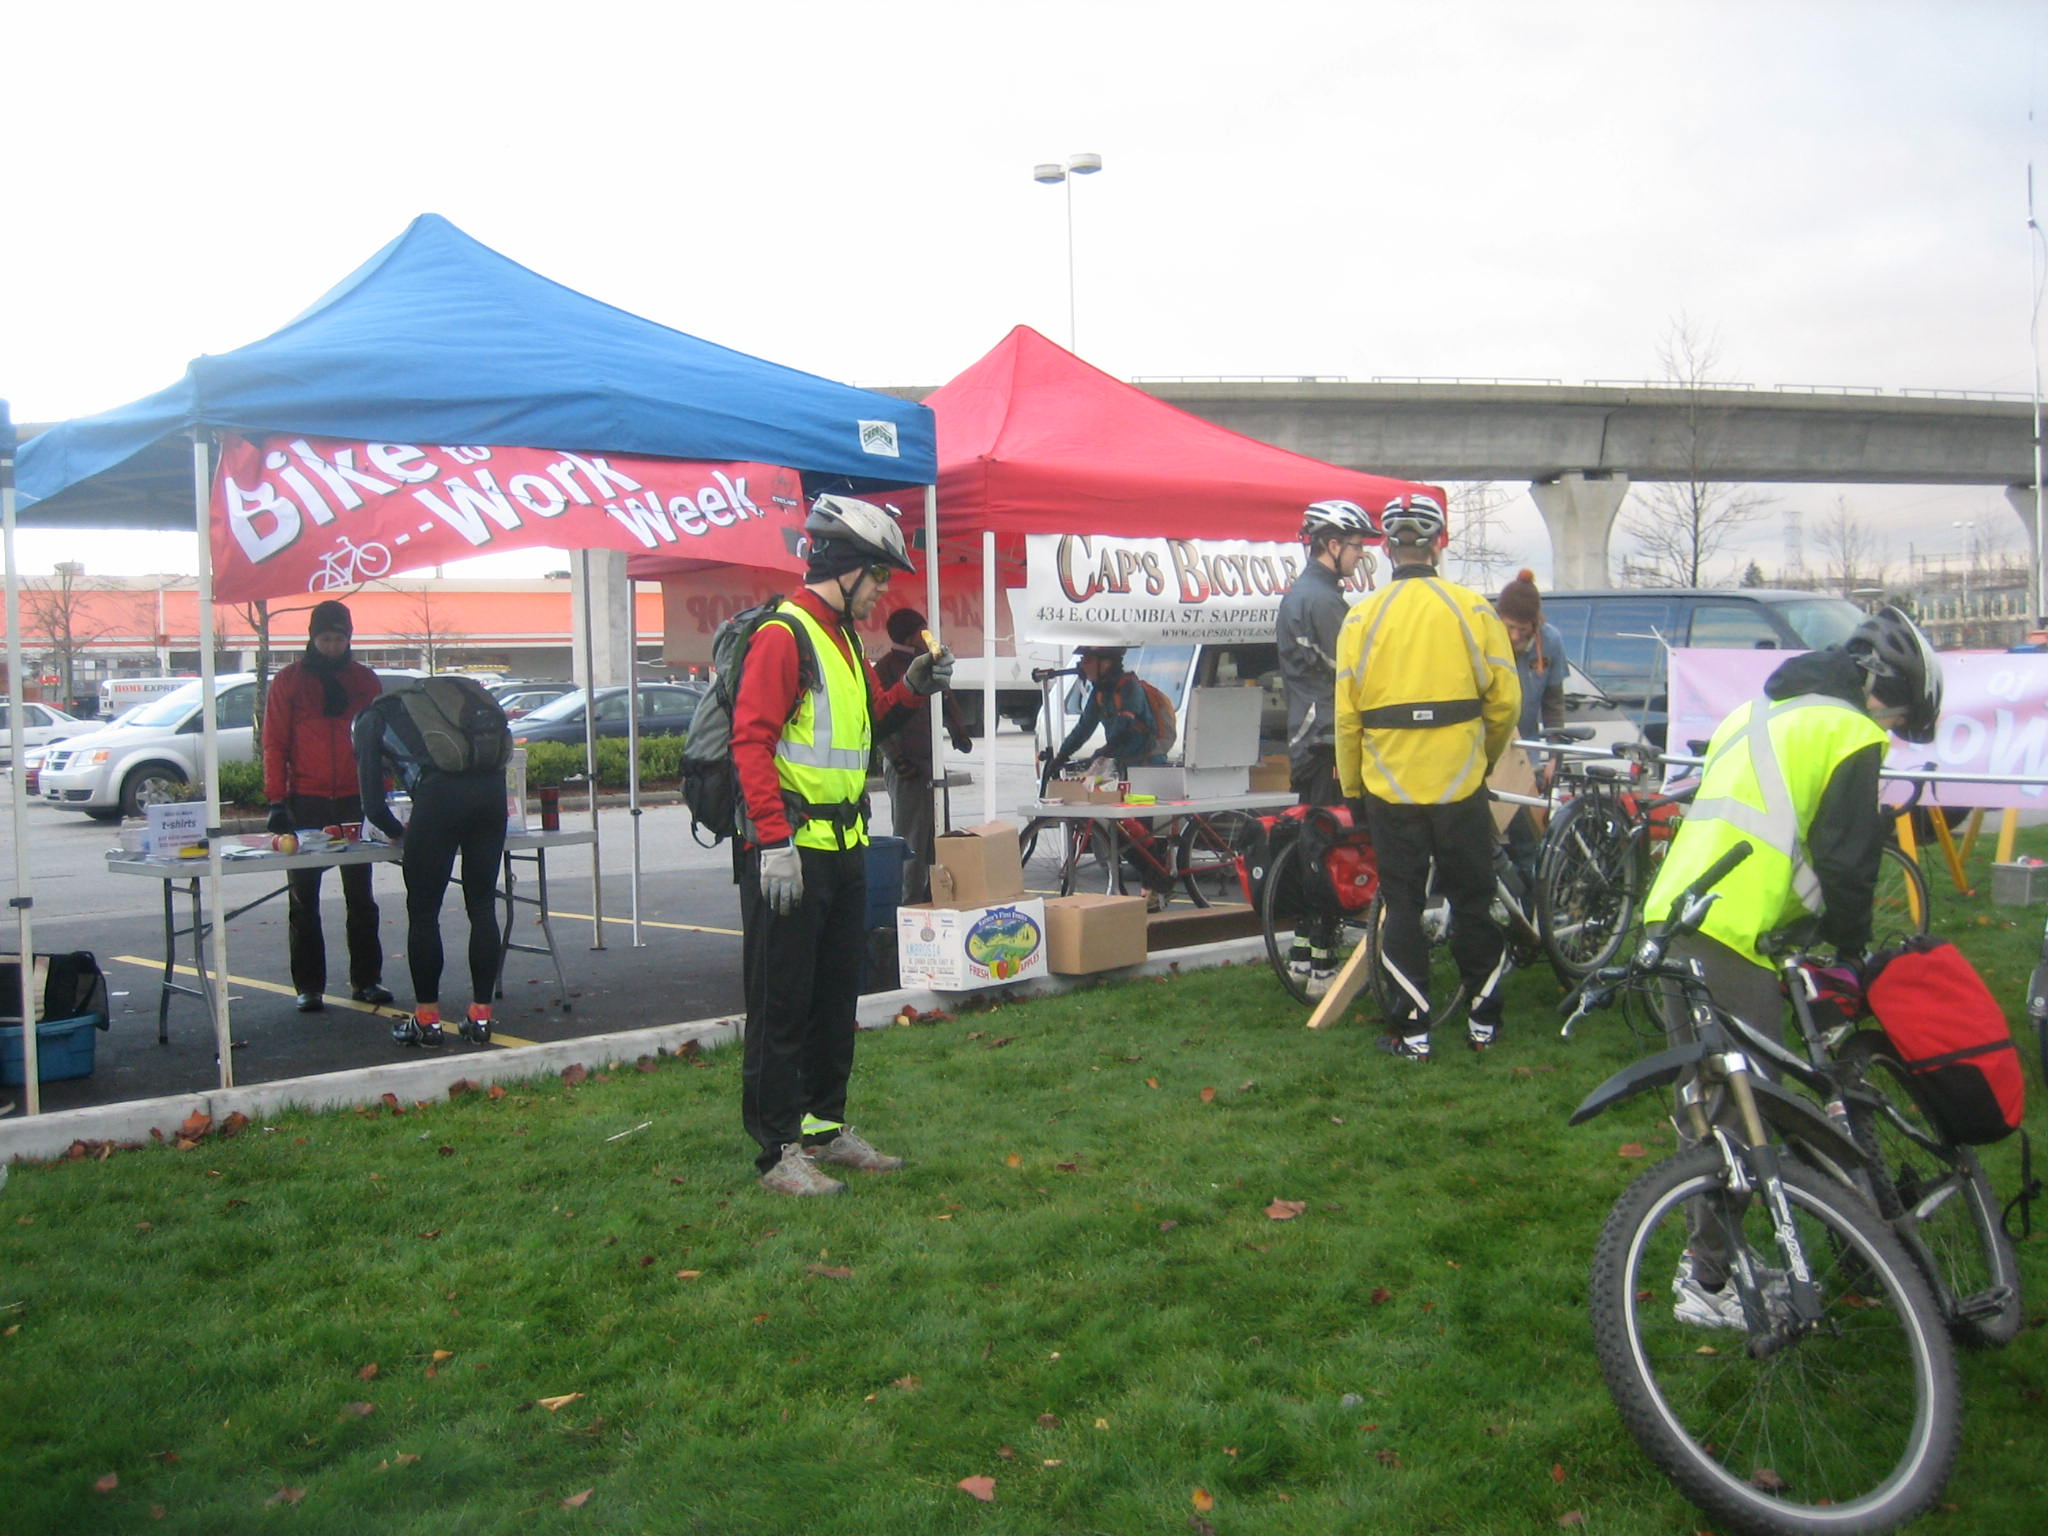 The back of the Gilmore commuter station. Note the tent from Cap's Bicycle Shop, where a bike mechanic is happy to help you out!